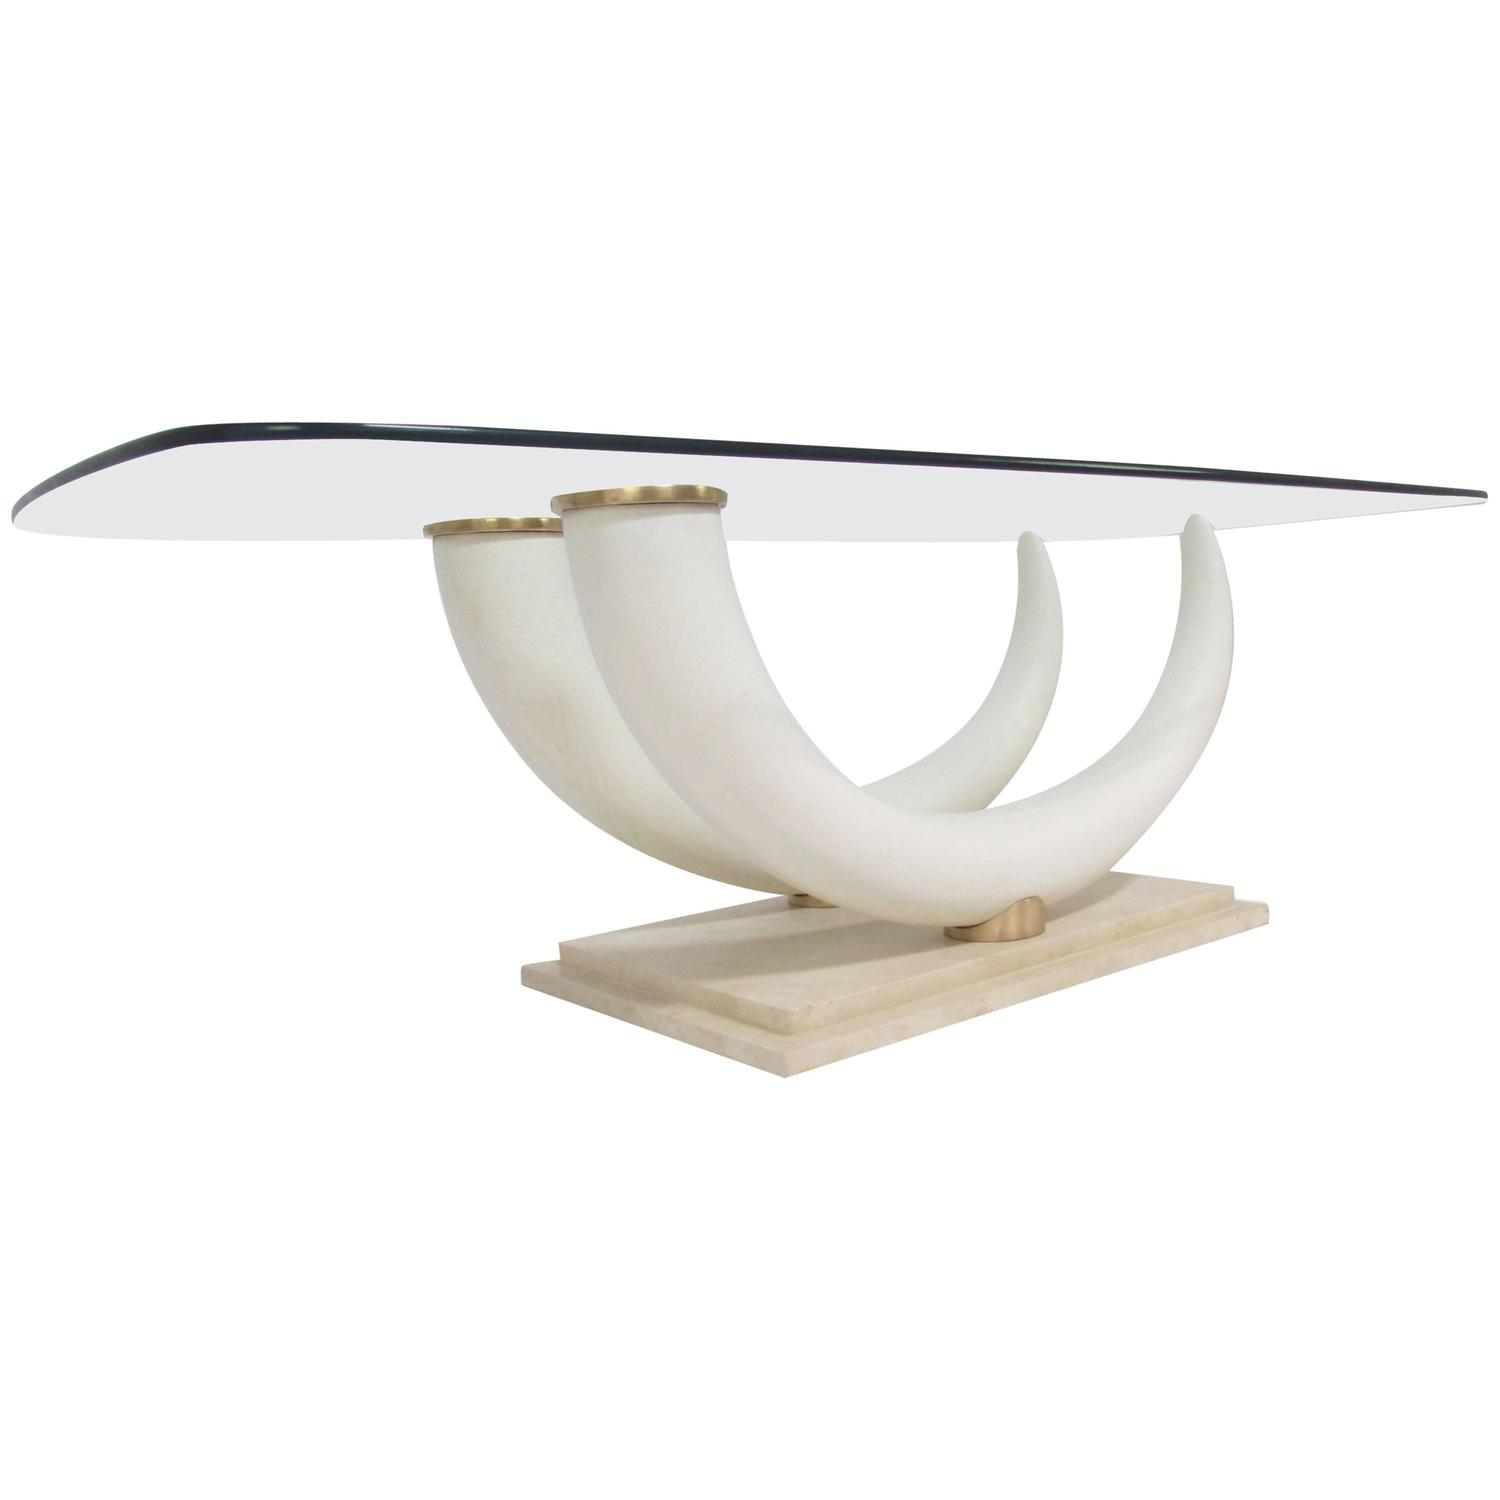 Jansen Coffee Table Faux Elephant Tusk Coffee Table By Maison Jansen At 1stdibs